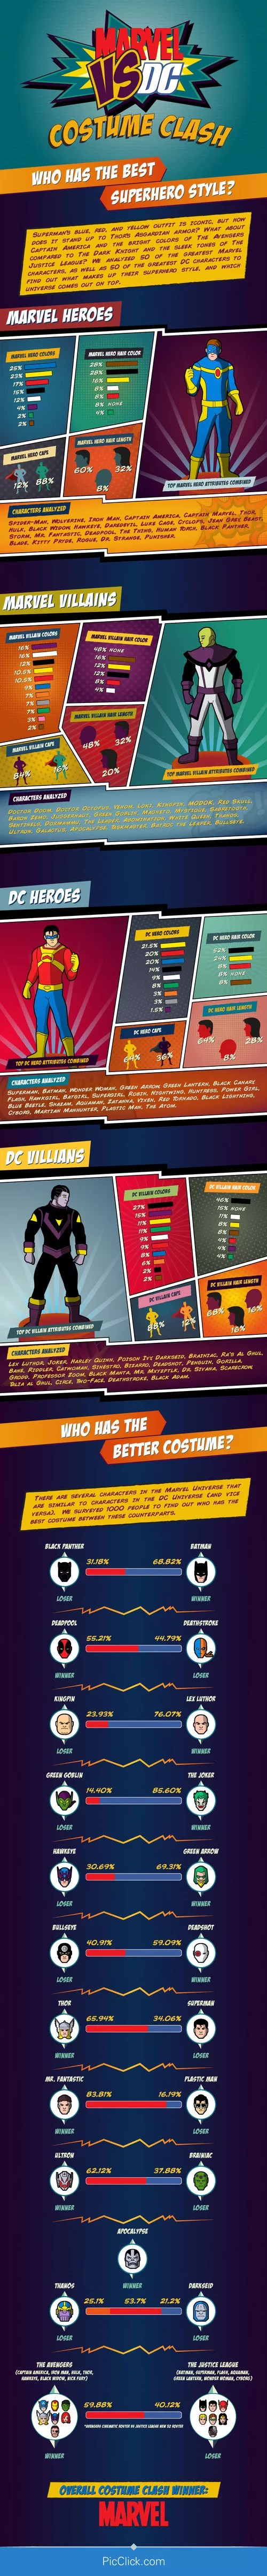 marvel-vs-dc-costume-clash-infographic1